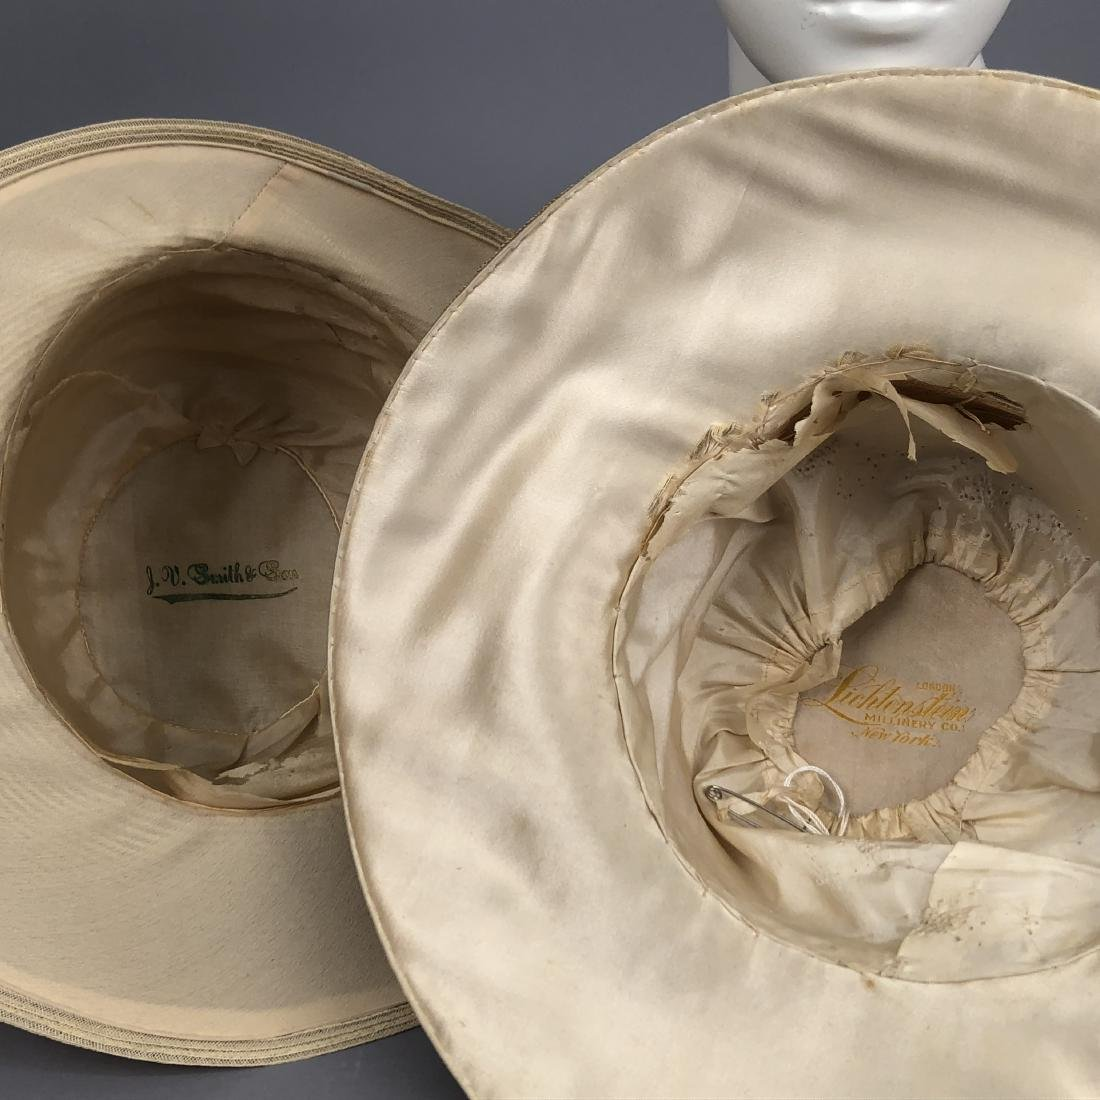 FOUR WIDE-BRIM STRAW HATS, 1905 - 1915 - 6